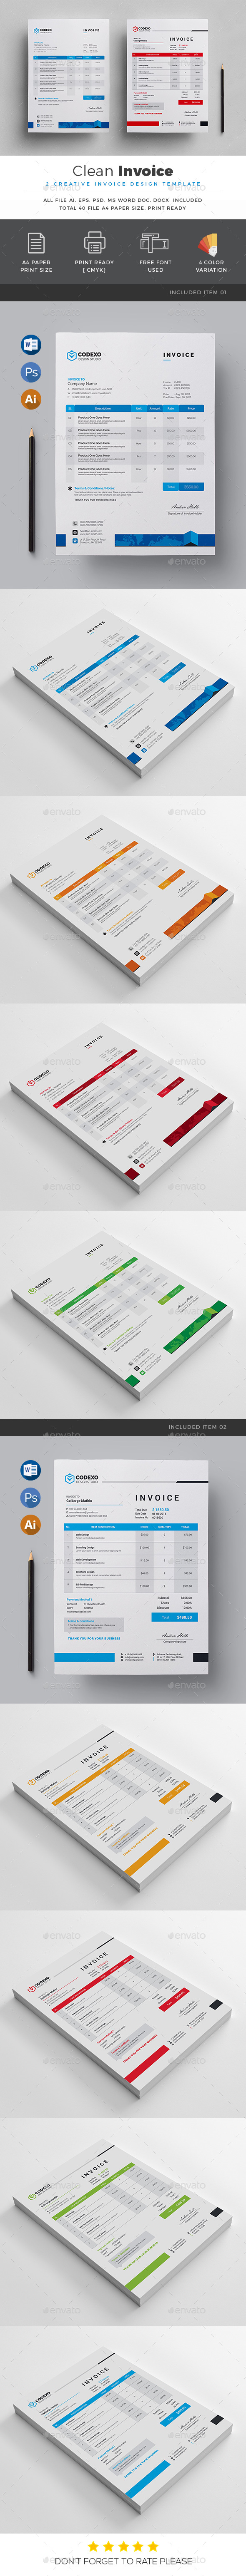 Clean Invoice - Stationery Print Templates